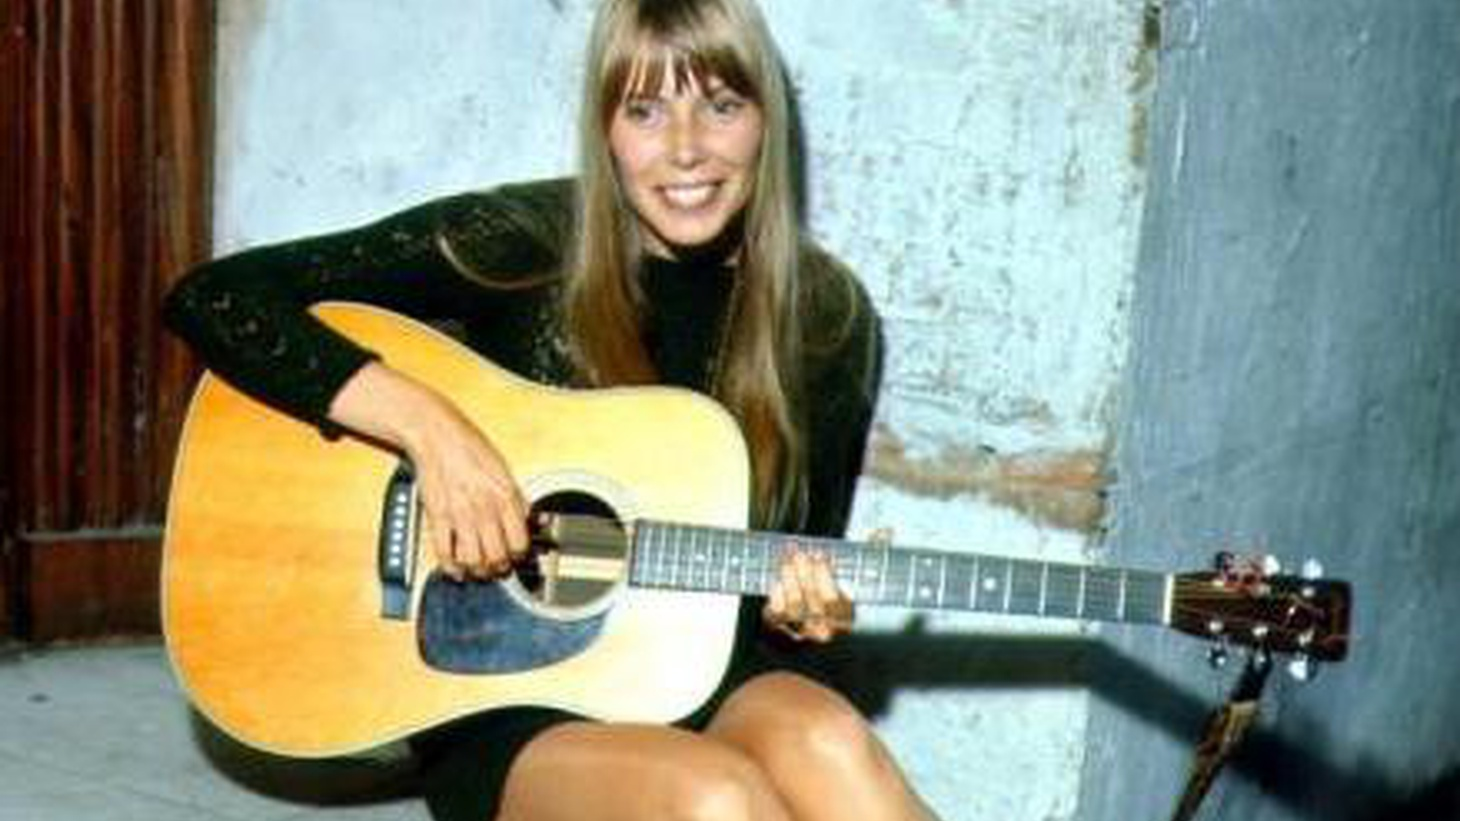 Joni Mitchell's first appearance on Morning Becomes Eclectic. Hear this intimate acoustic performance, along with a candid yet playful interview.